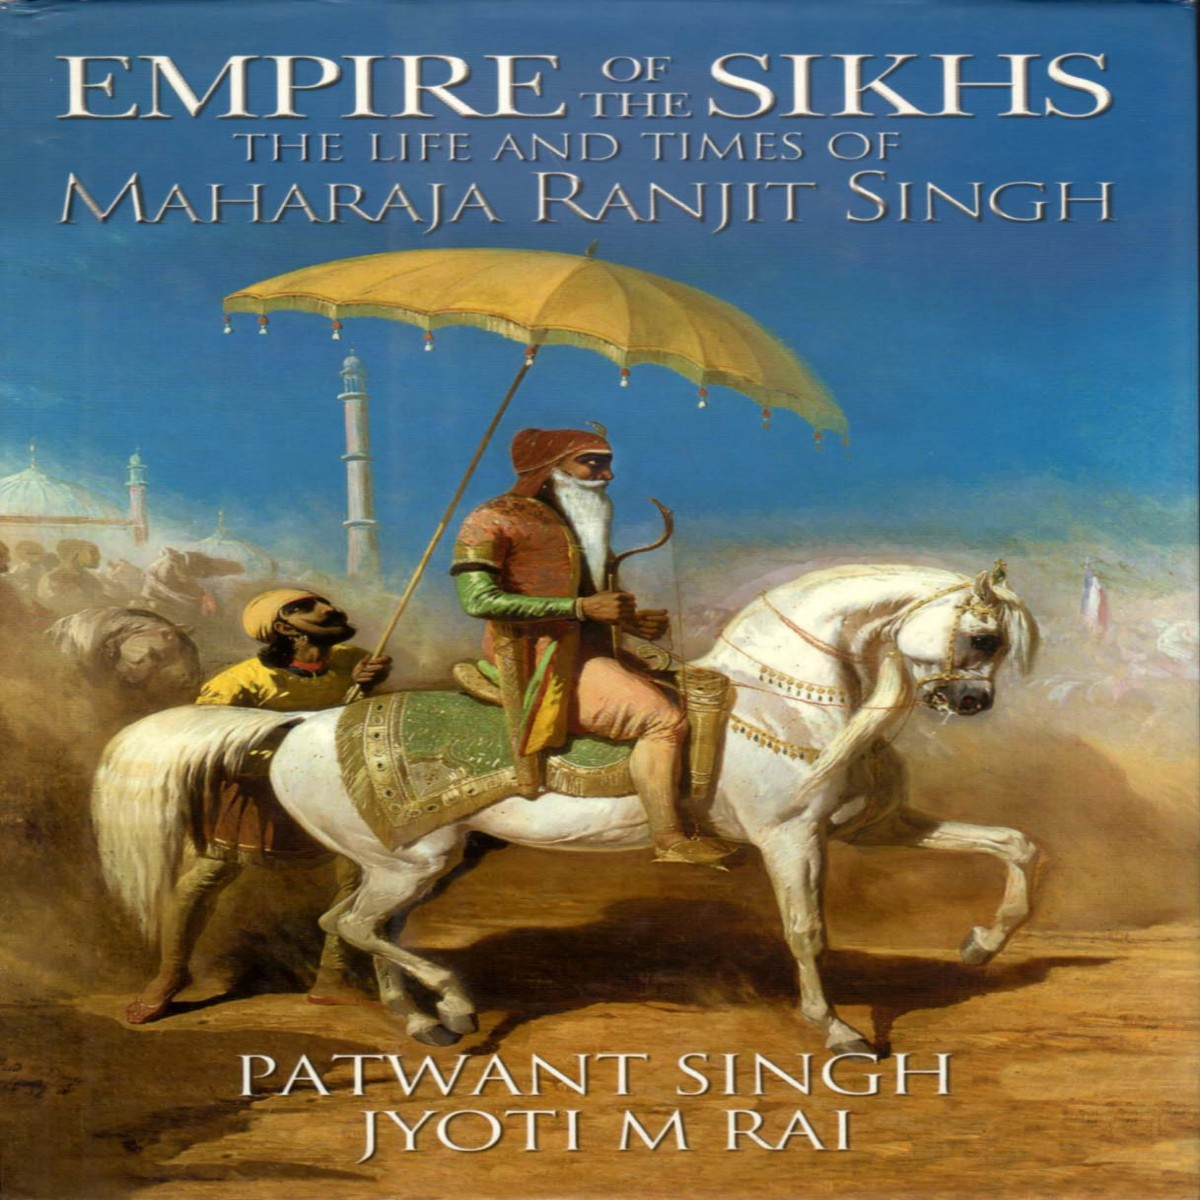 Empire of the Sikhs the Life and Times of Maharaja Ranjit Singh